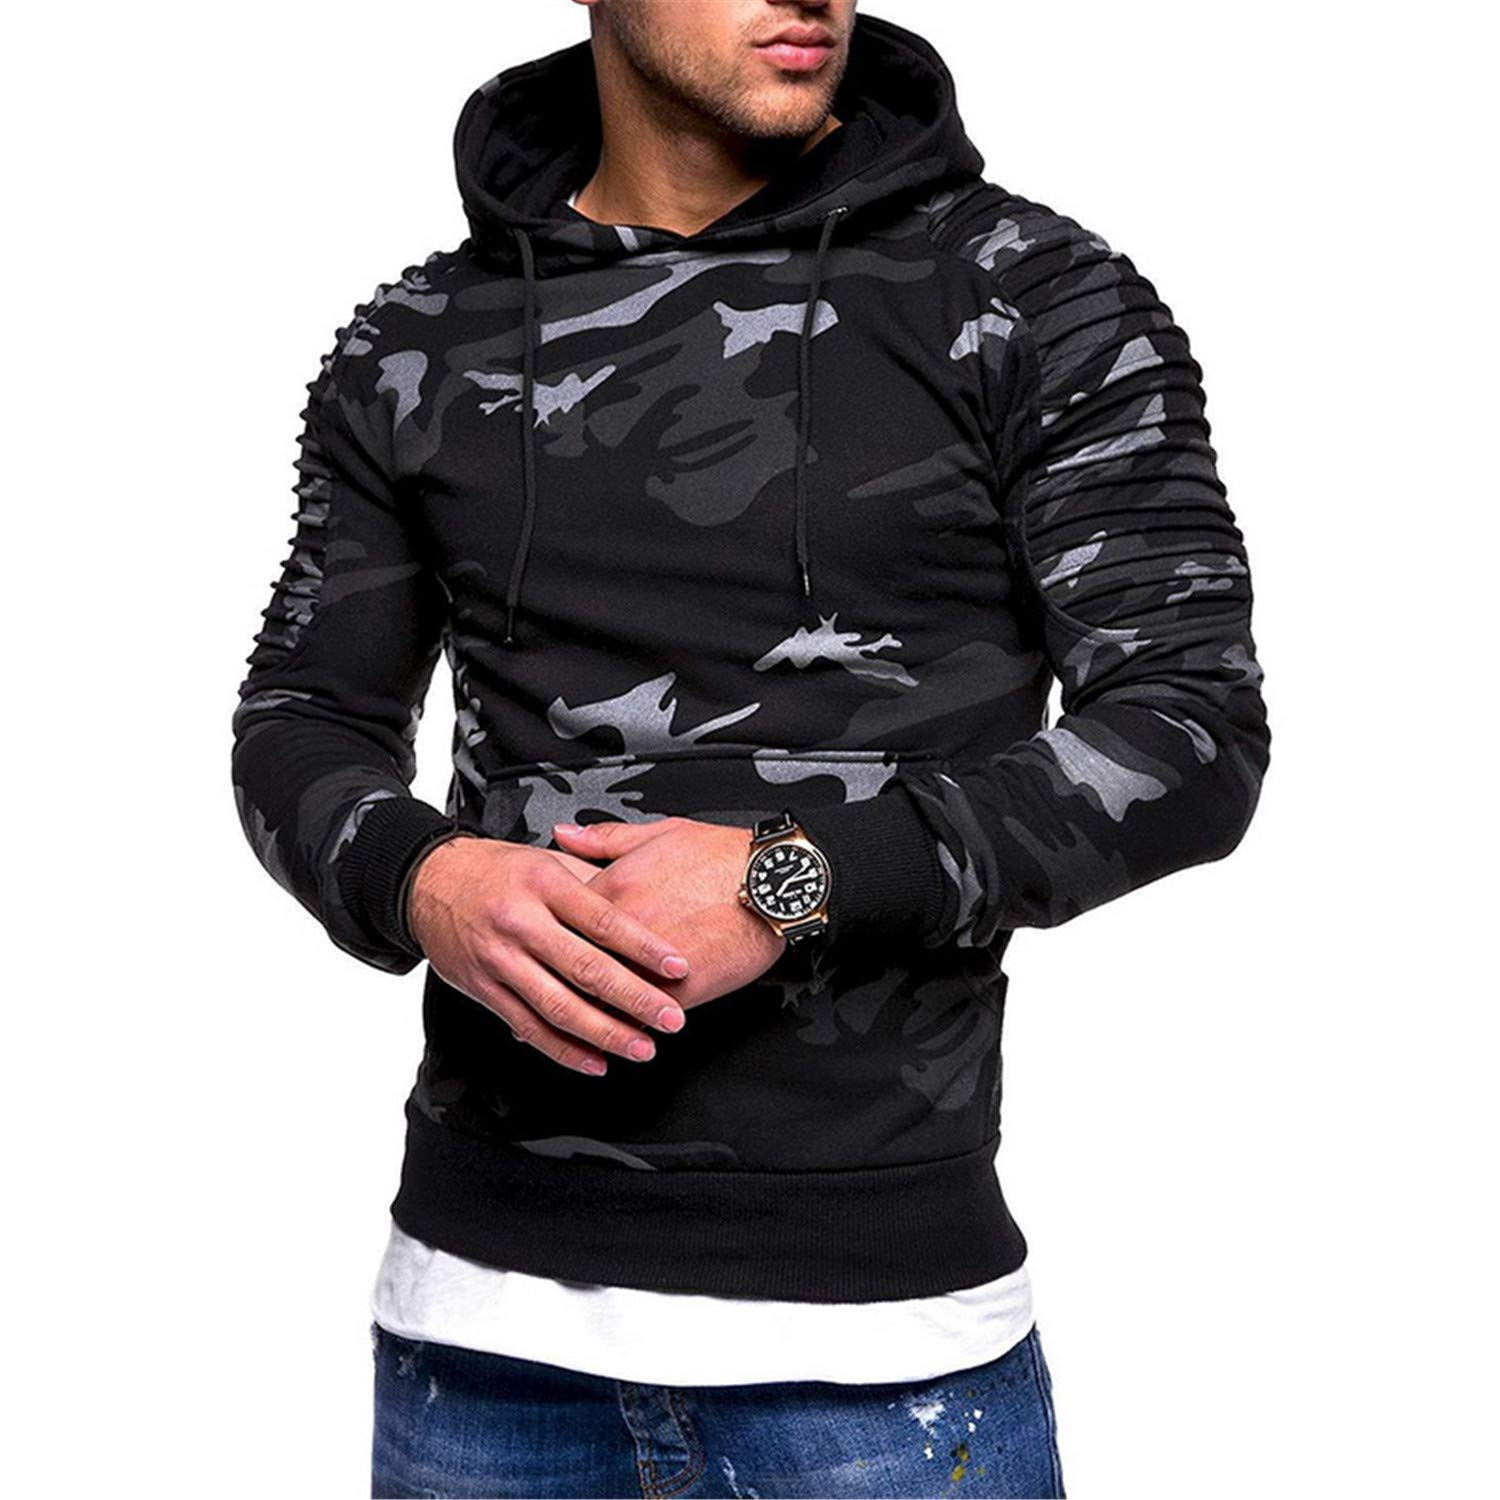 Camouflage Male Camo Hoody Hip Hop Military Hoodie Plus Size 3XL